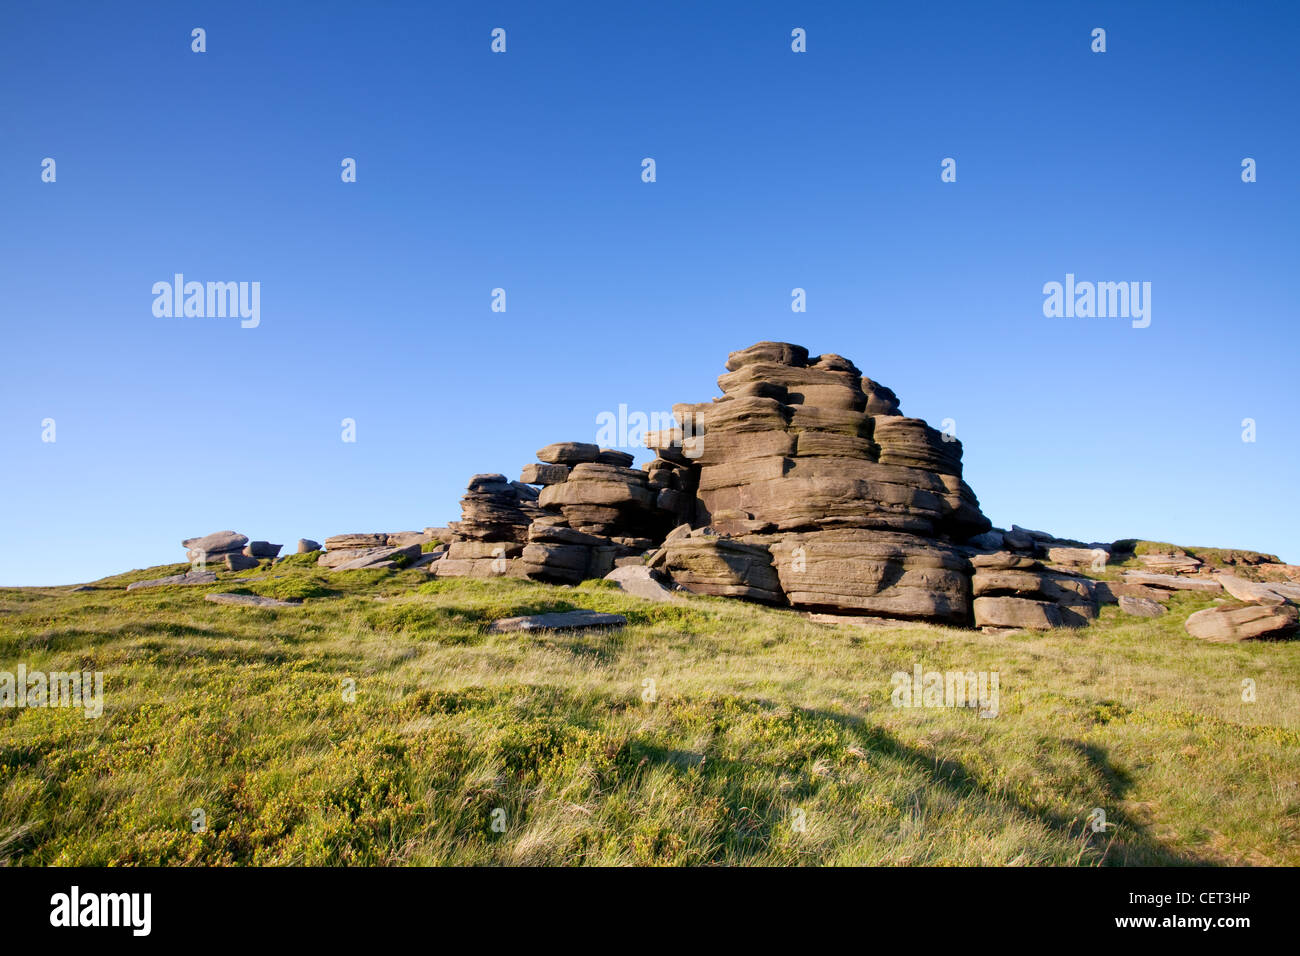 Rock formations on Kinder Scout, a moorland plateau and the highest point in the Peak District National Park. - Stock Image